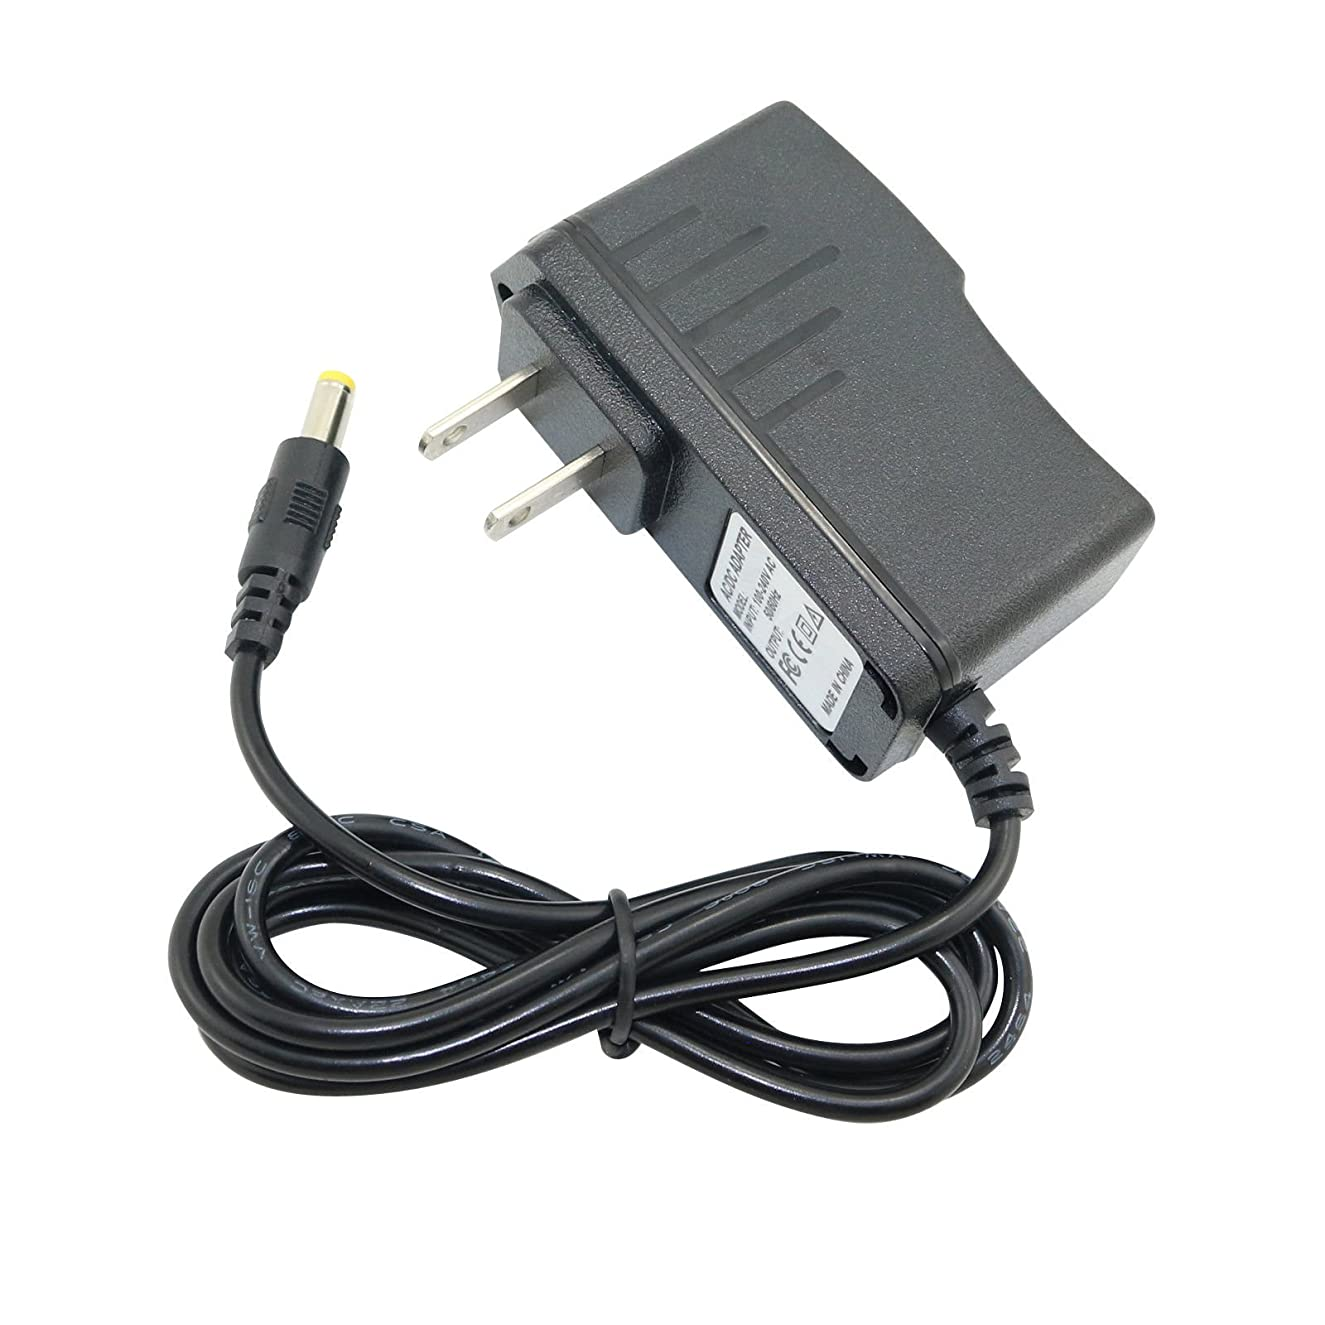 AC Charger Cord for Marshall MS-2 2C 2R Micro Guitar Amplifier Power Supply Charger